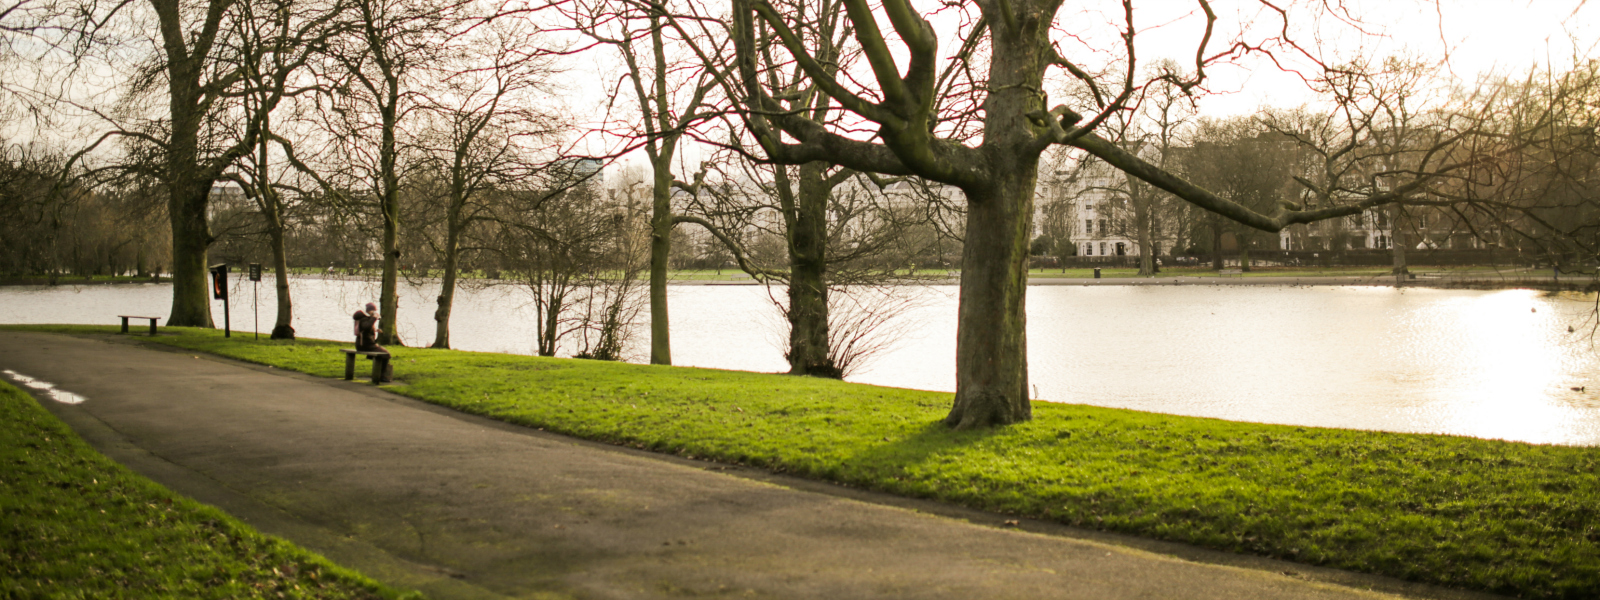 Person sitting on bench in a park next to a river